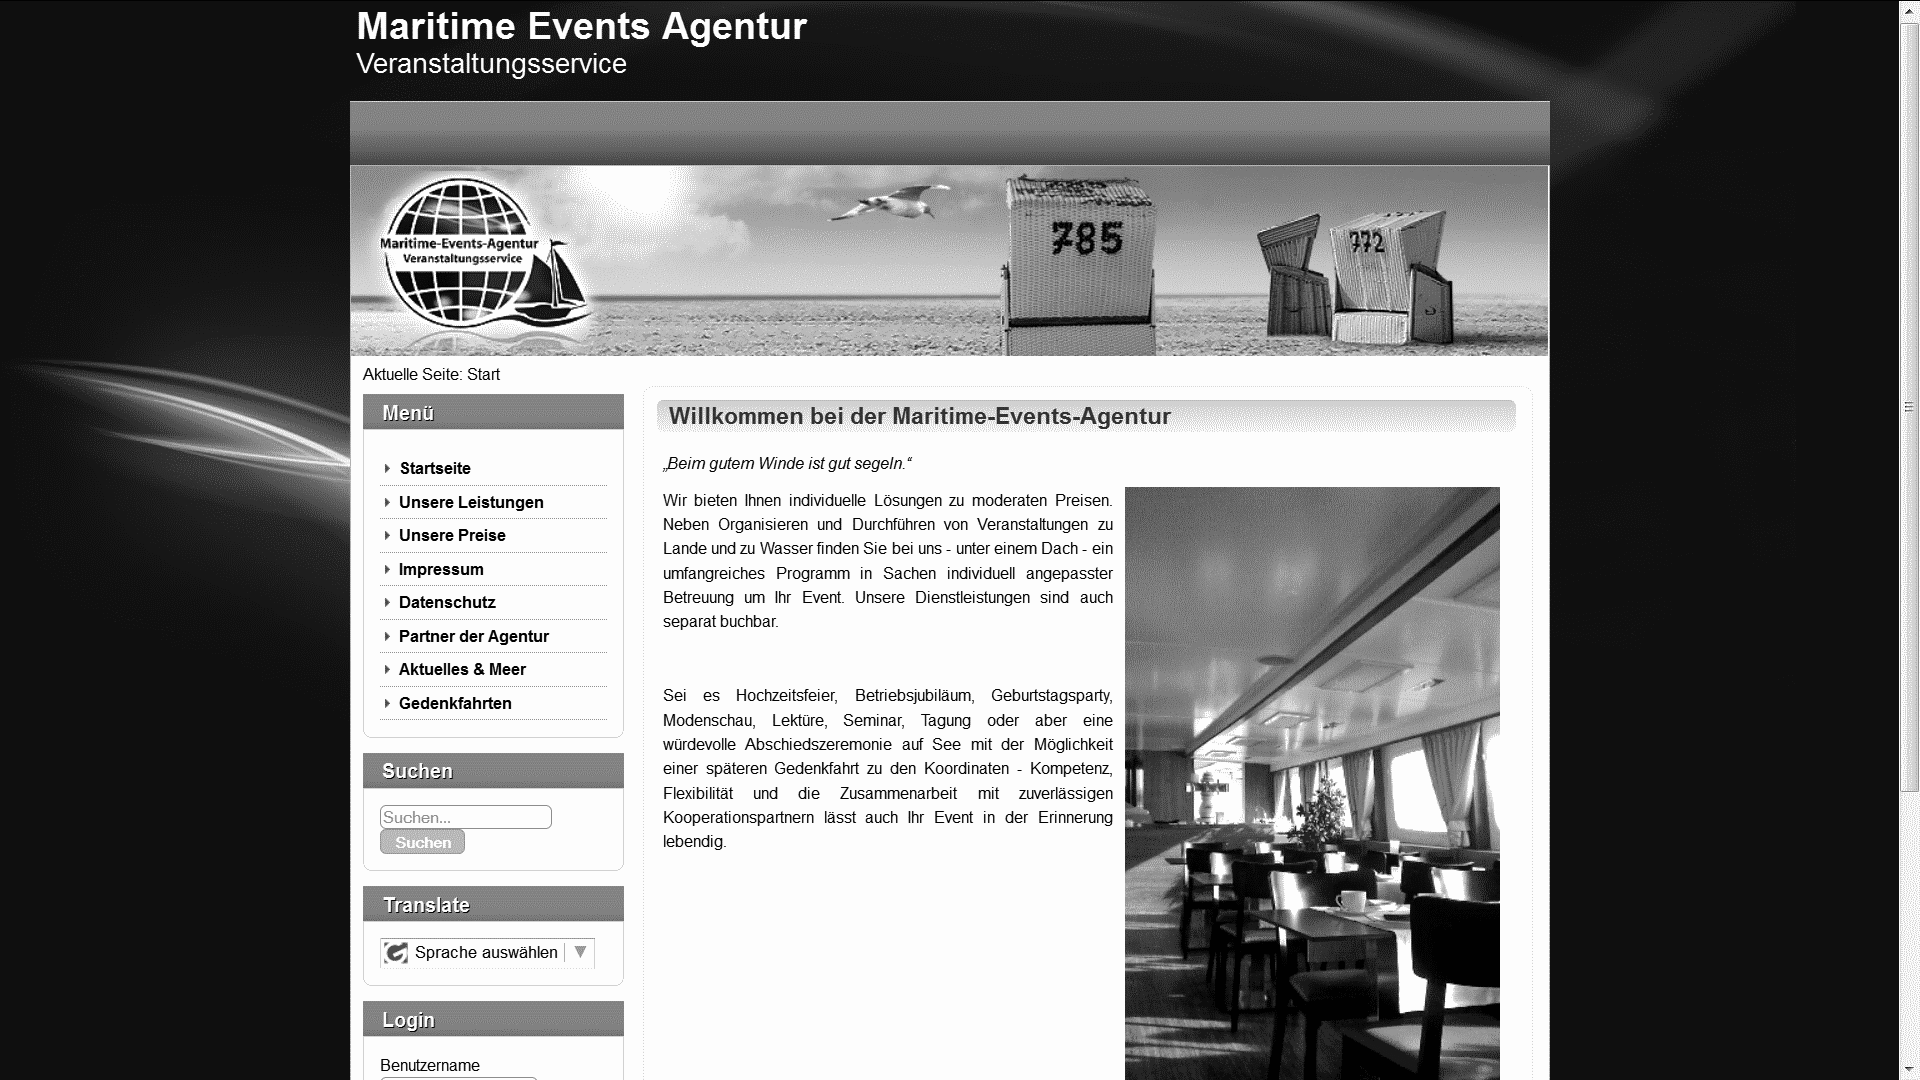 Maritime Events Agentur